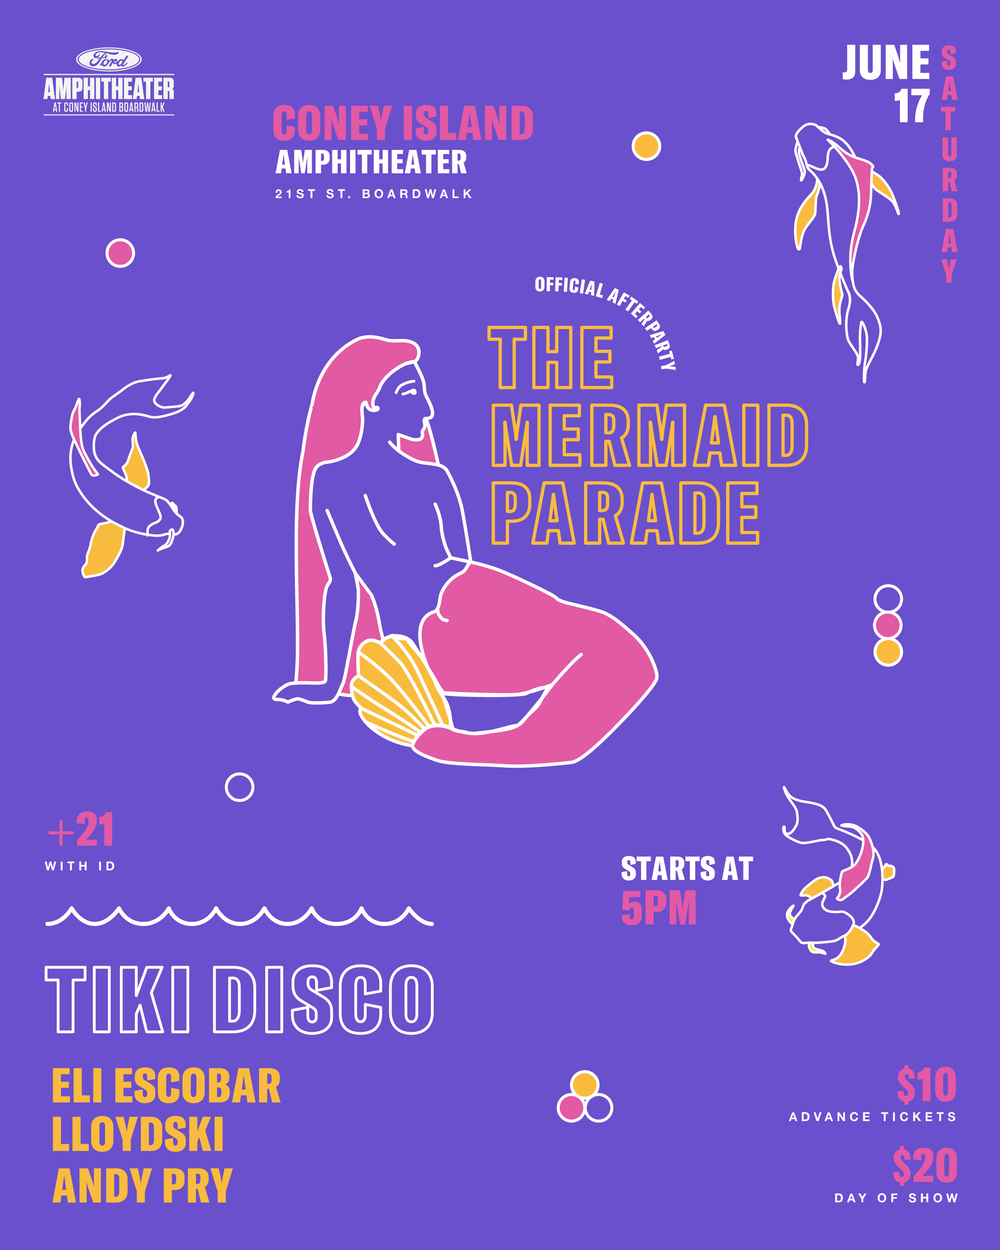 2017-04-29_tikidisco_mermaidfest_02.png